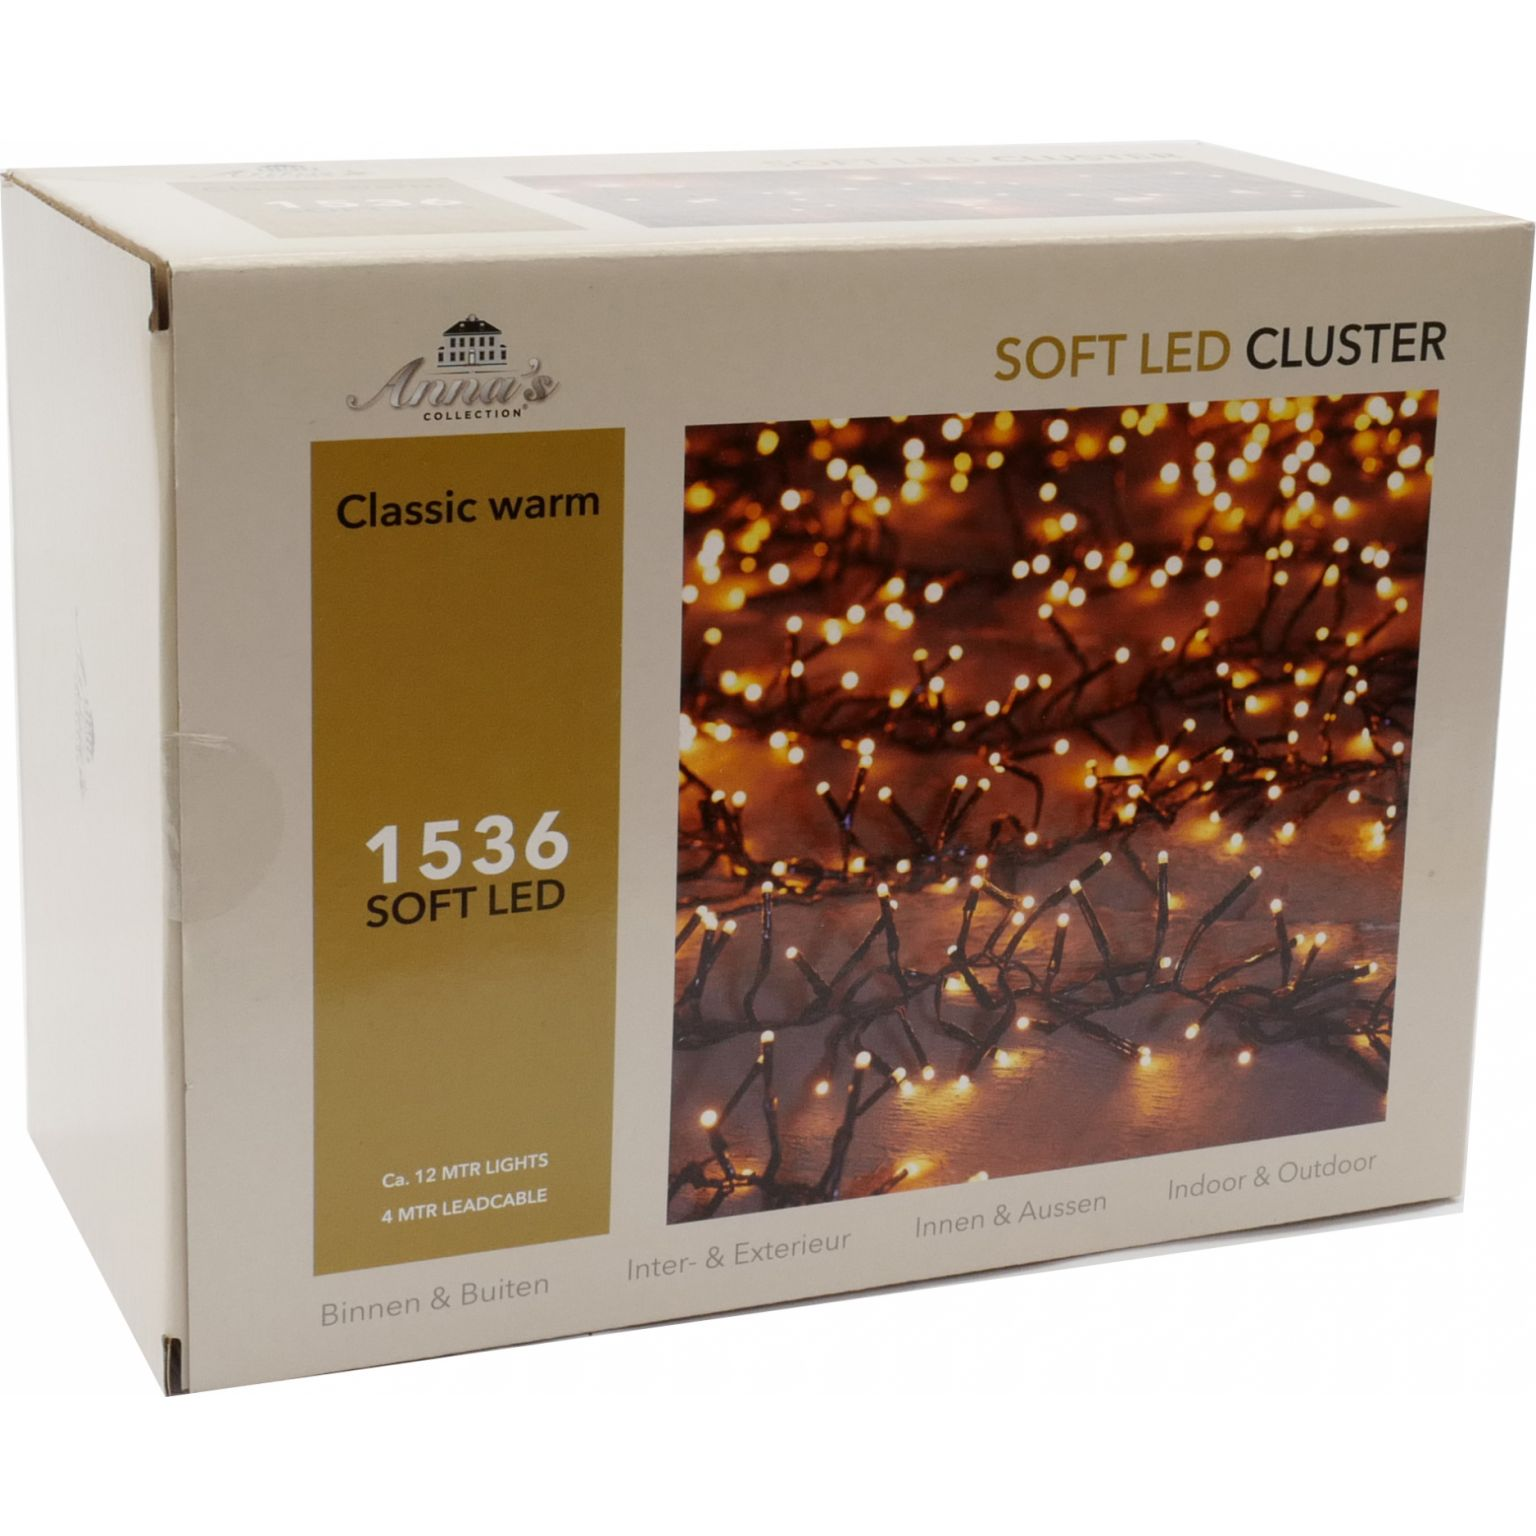 Clusterverlichting 1536 Lamps Soft Led Classic Warm Kerstwinqel Nl